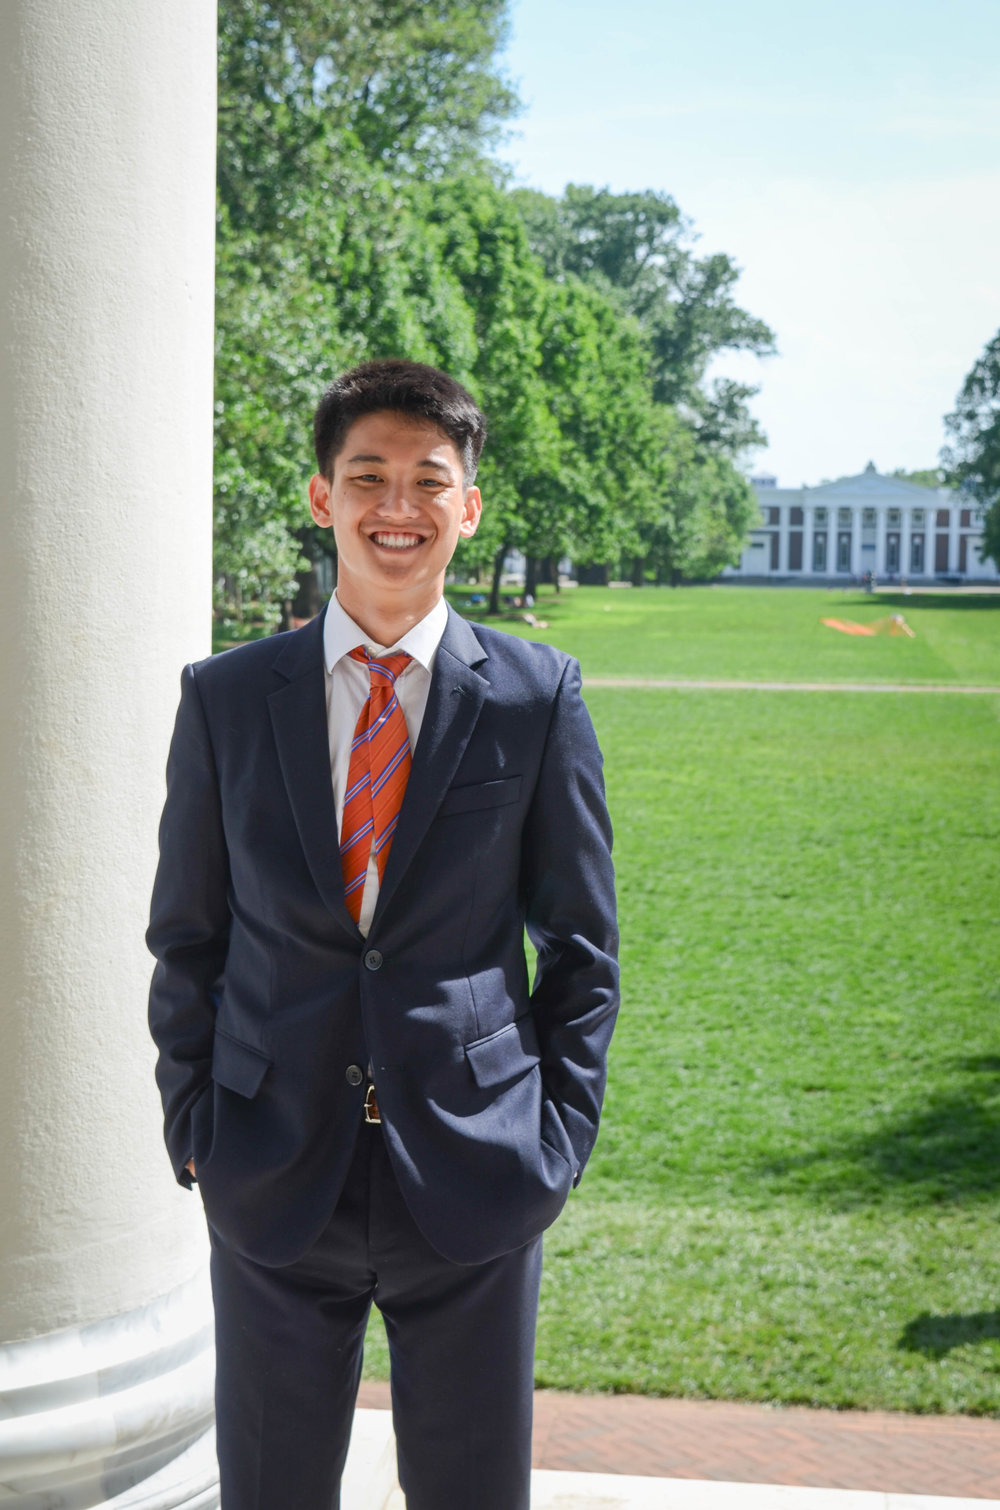 USG of Media & Design     Daniel Luo - Daniel Luo is a fourth year double majoring in Government (track: Political Theory) and English. This is his second year working as Media and Design for VAMUN, and he's very excited to continue the tradition. In his spare time Daniel enjoys working on his car and bike, watching educational videos on YouTube, and spending time with his friends.